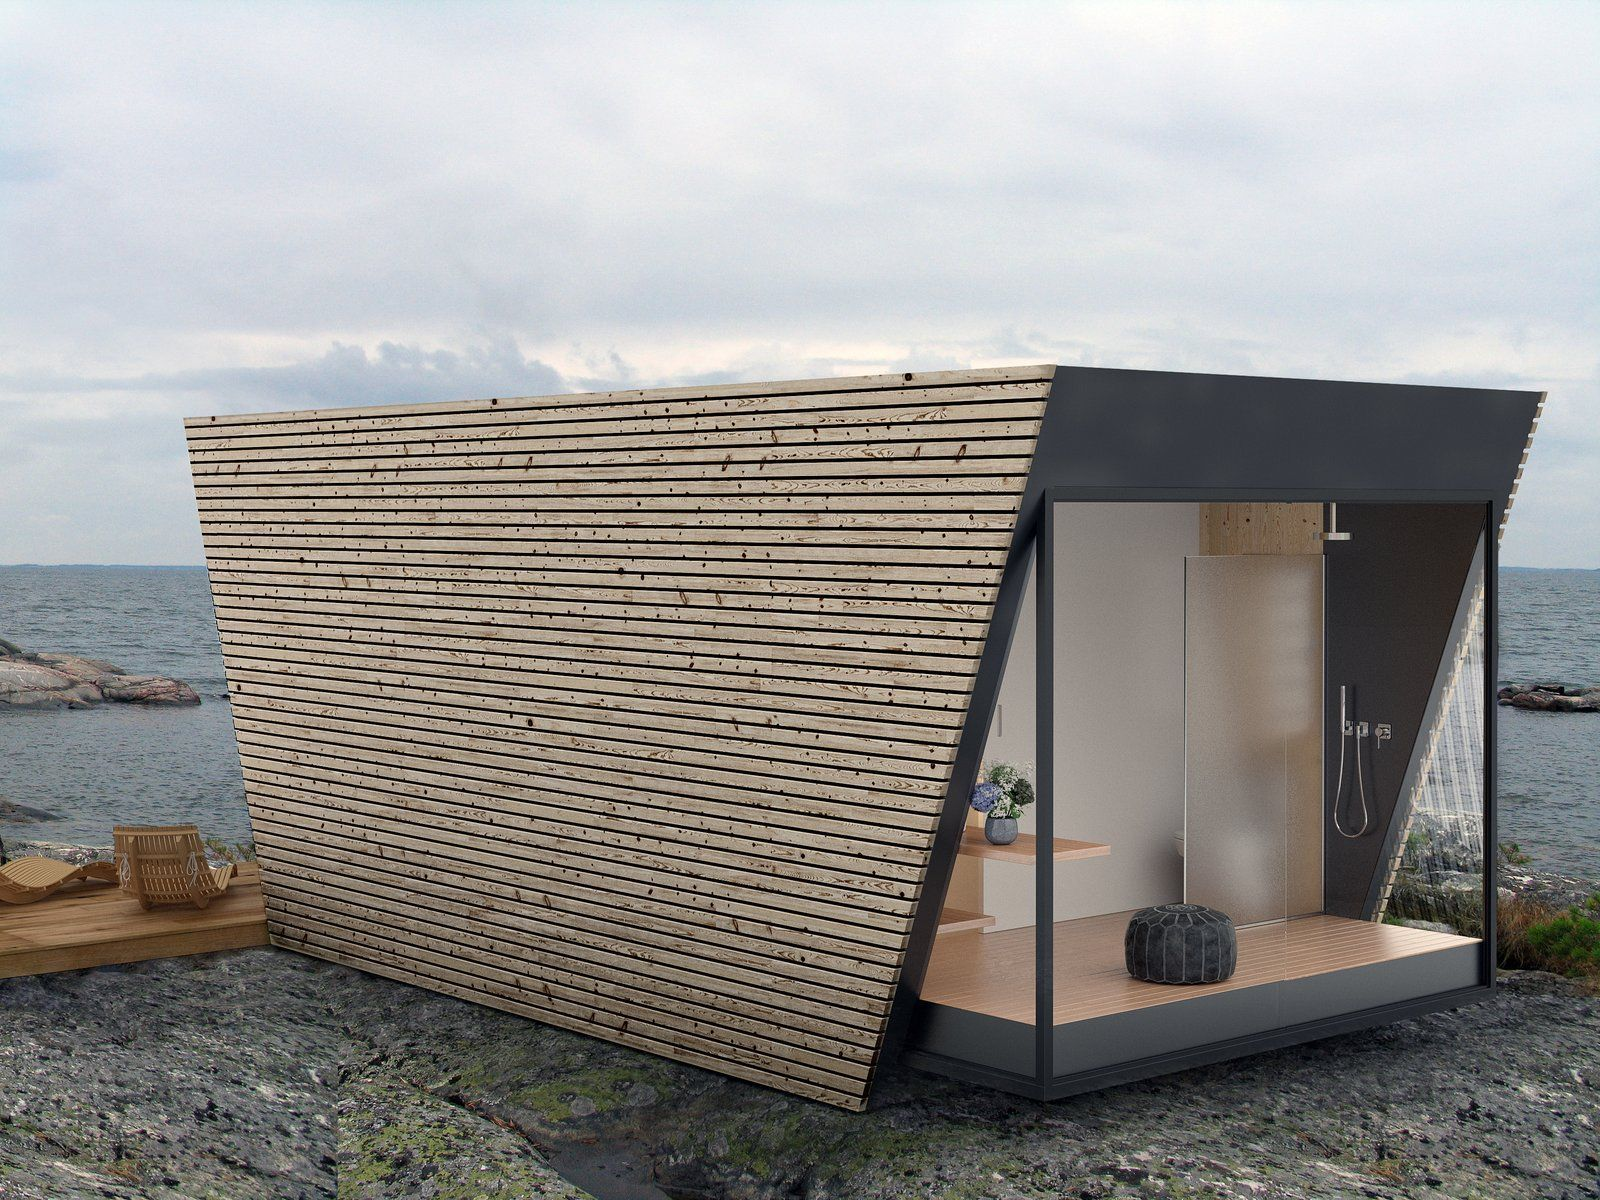 This Modular Eco-Hotel Room Is Poised to Drop Into Nearly Any ...